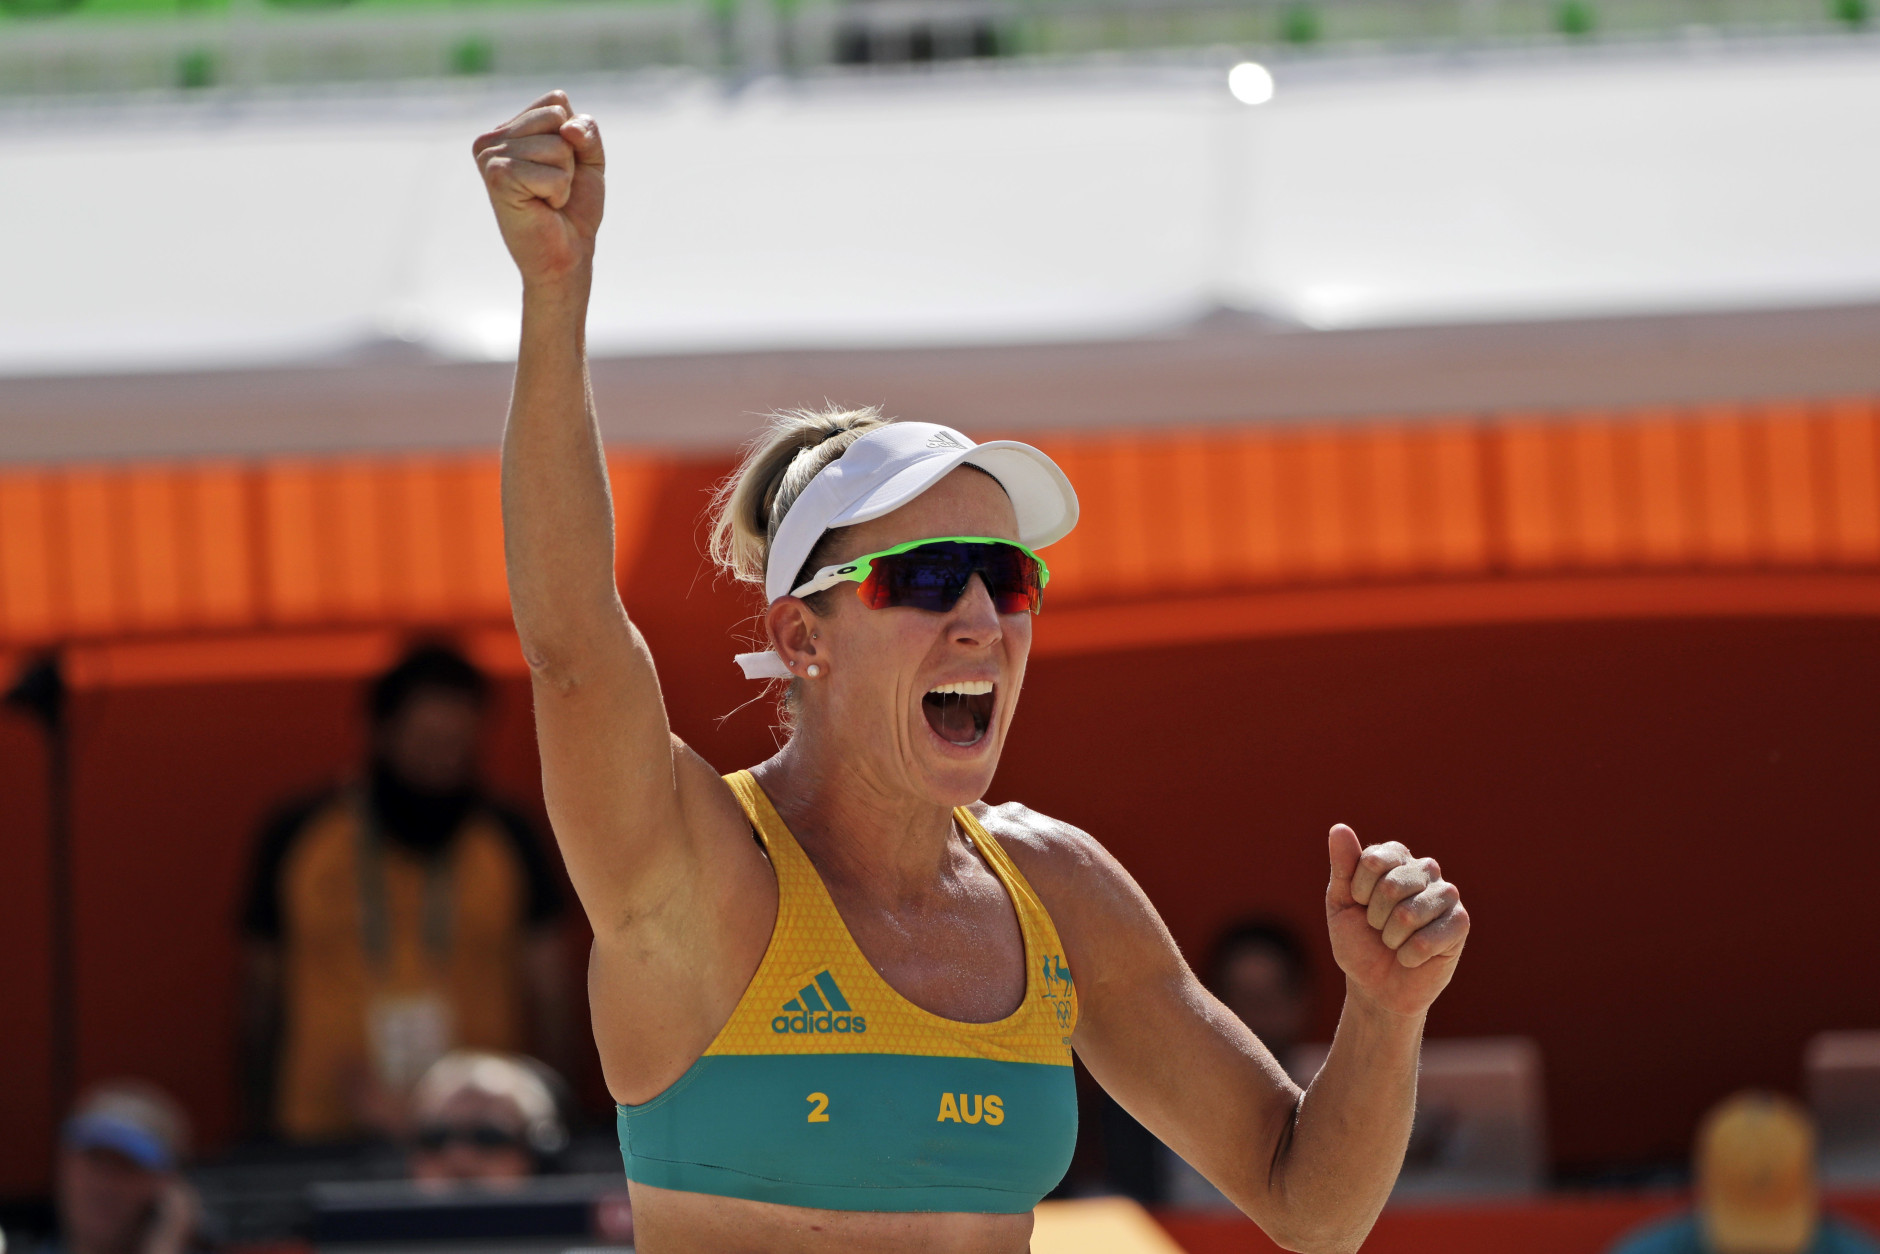 Australia's Louise Bawden celebrates after winning a point over Costa Rica during a women's beach volleyball match at the 2016 Summer Olympics in Rio de Janeiro, Brazil, Saturday, Aug. 6, 2016. (AP Photo/Marcio Jose Sanchez)